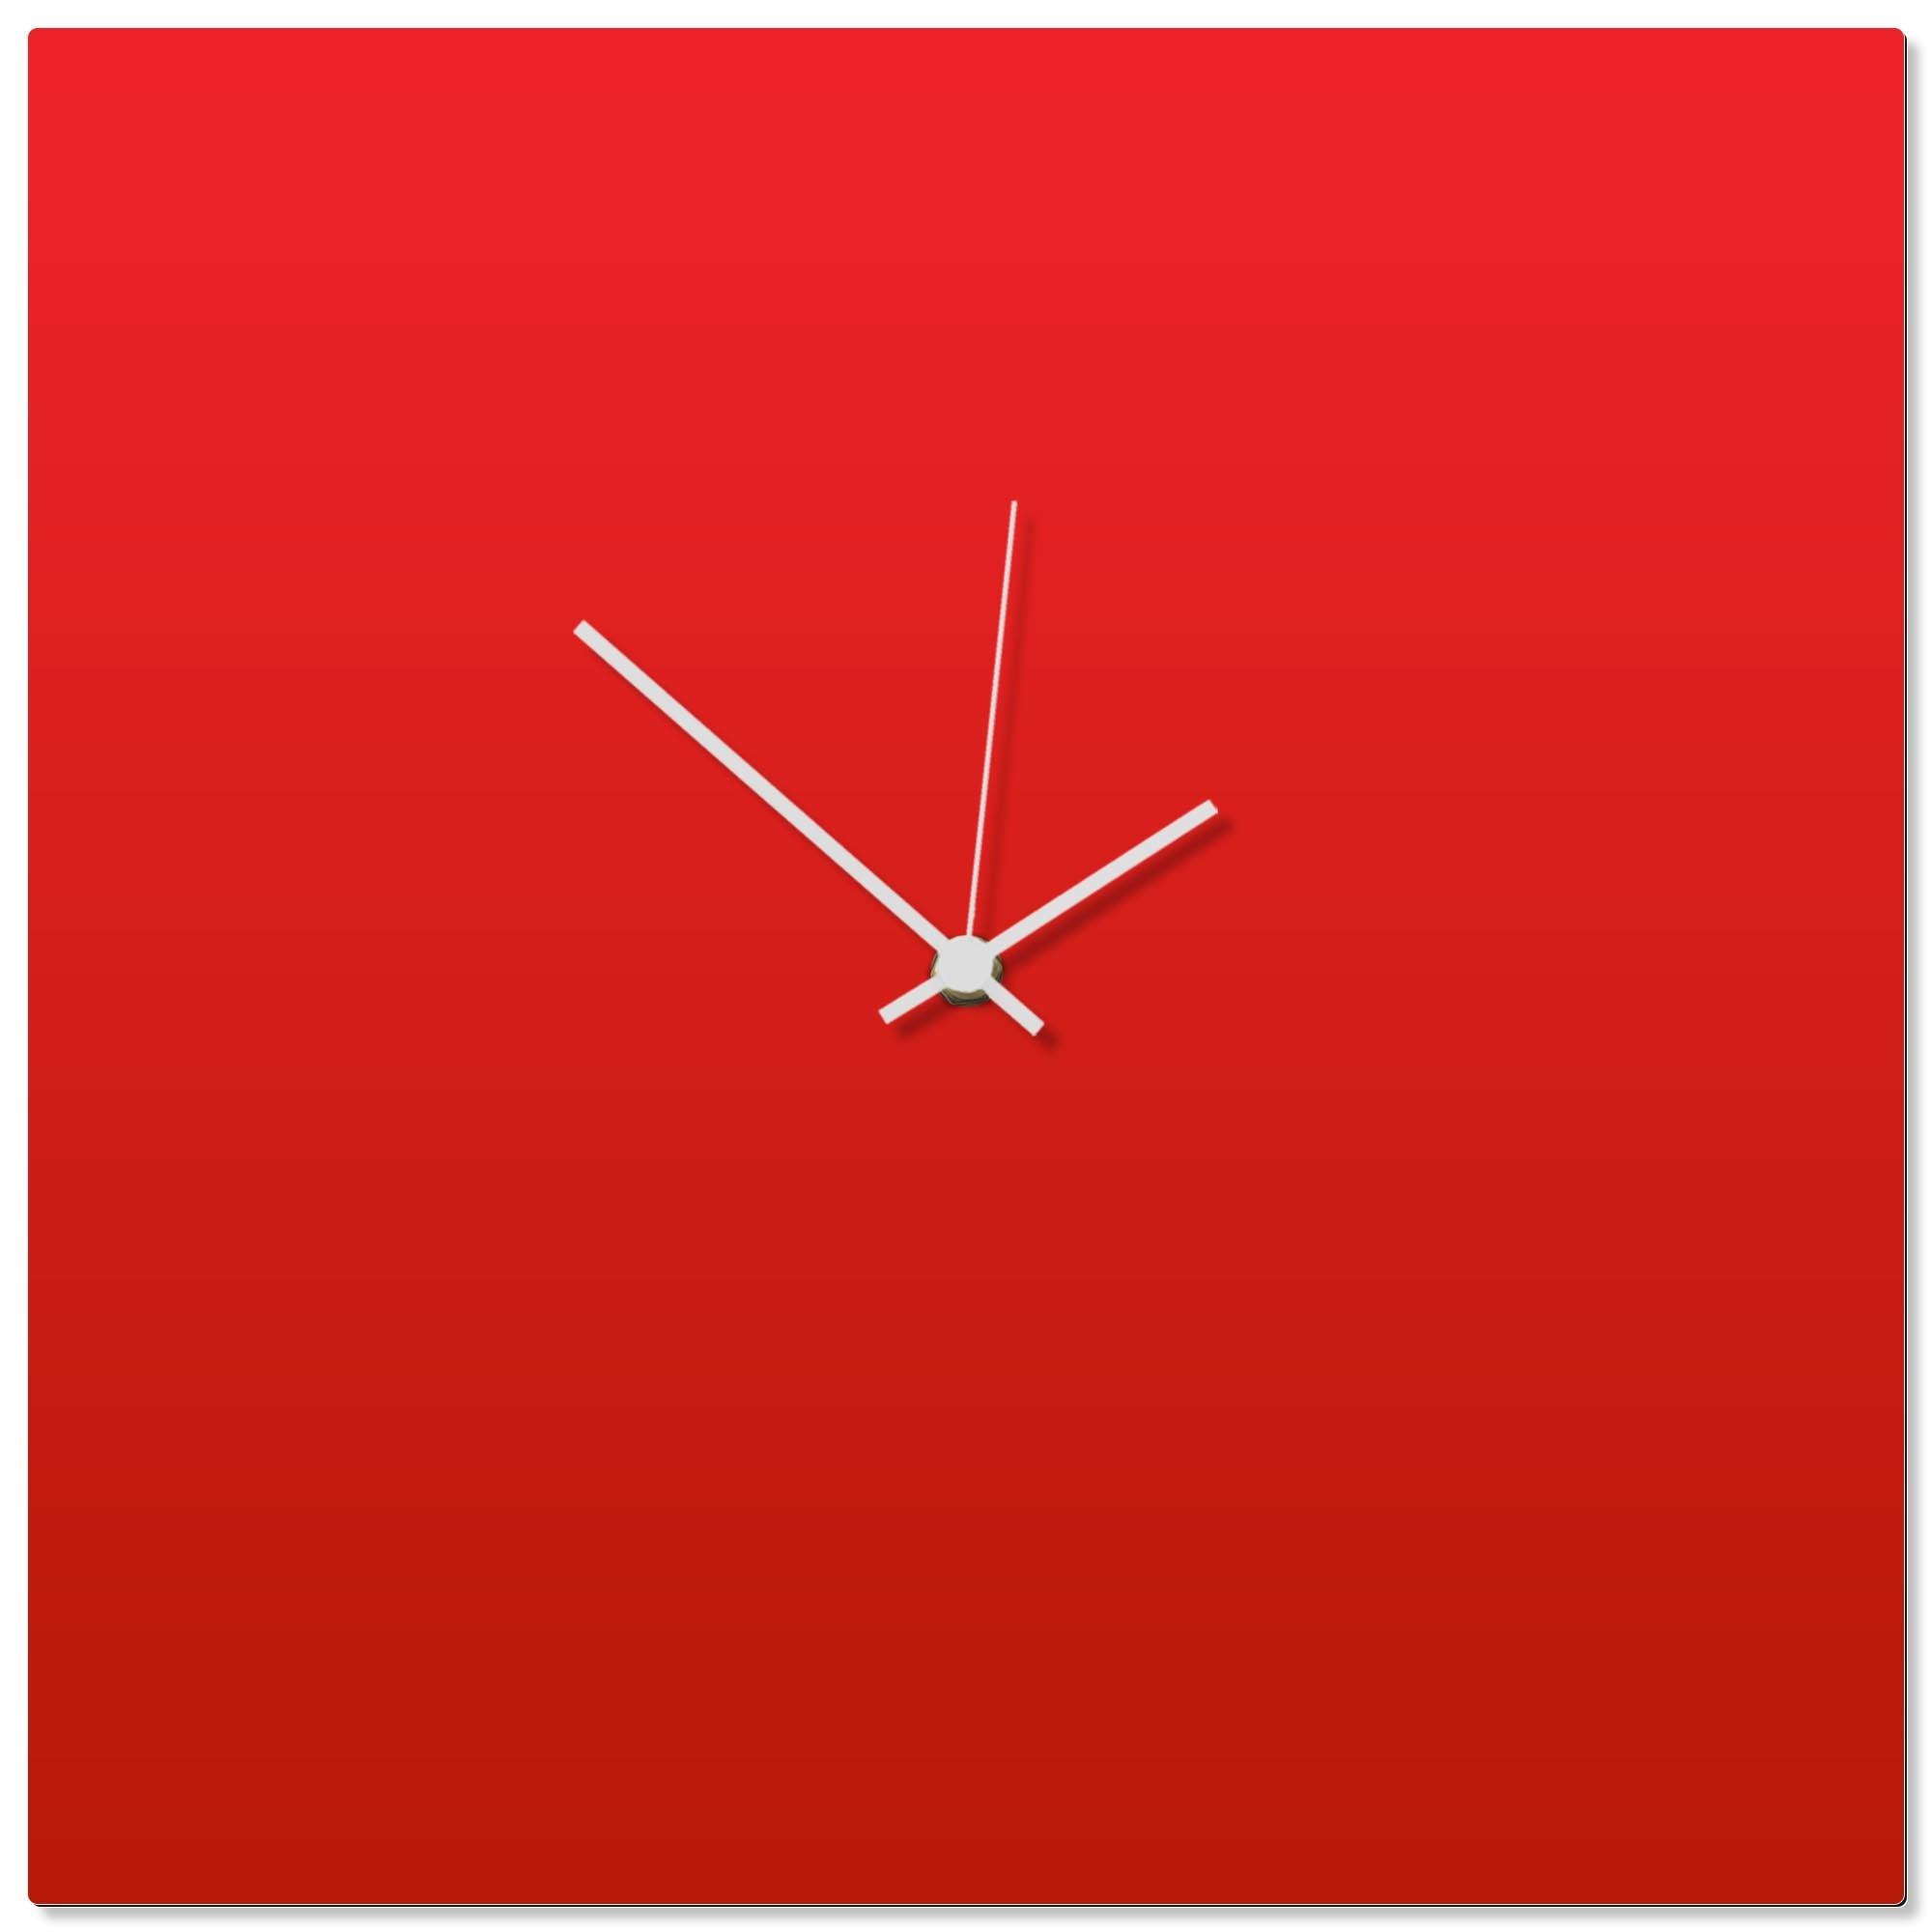 Redout White Square Clock by Adam Schwoeppe - Contemporary Clock on Aluminum Polymetal